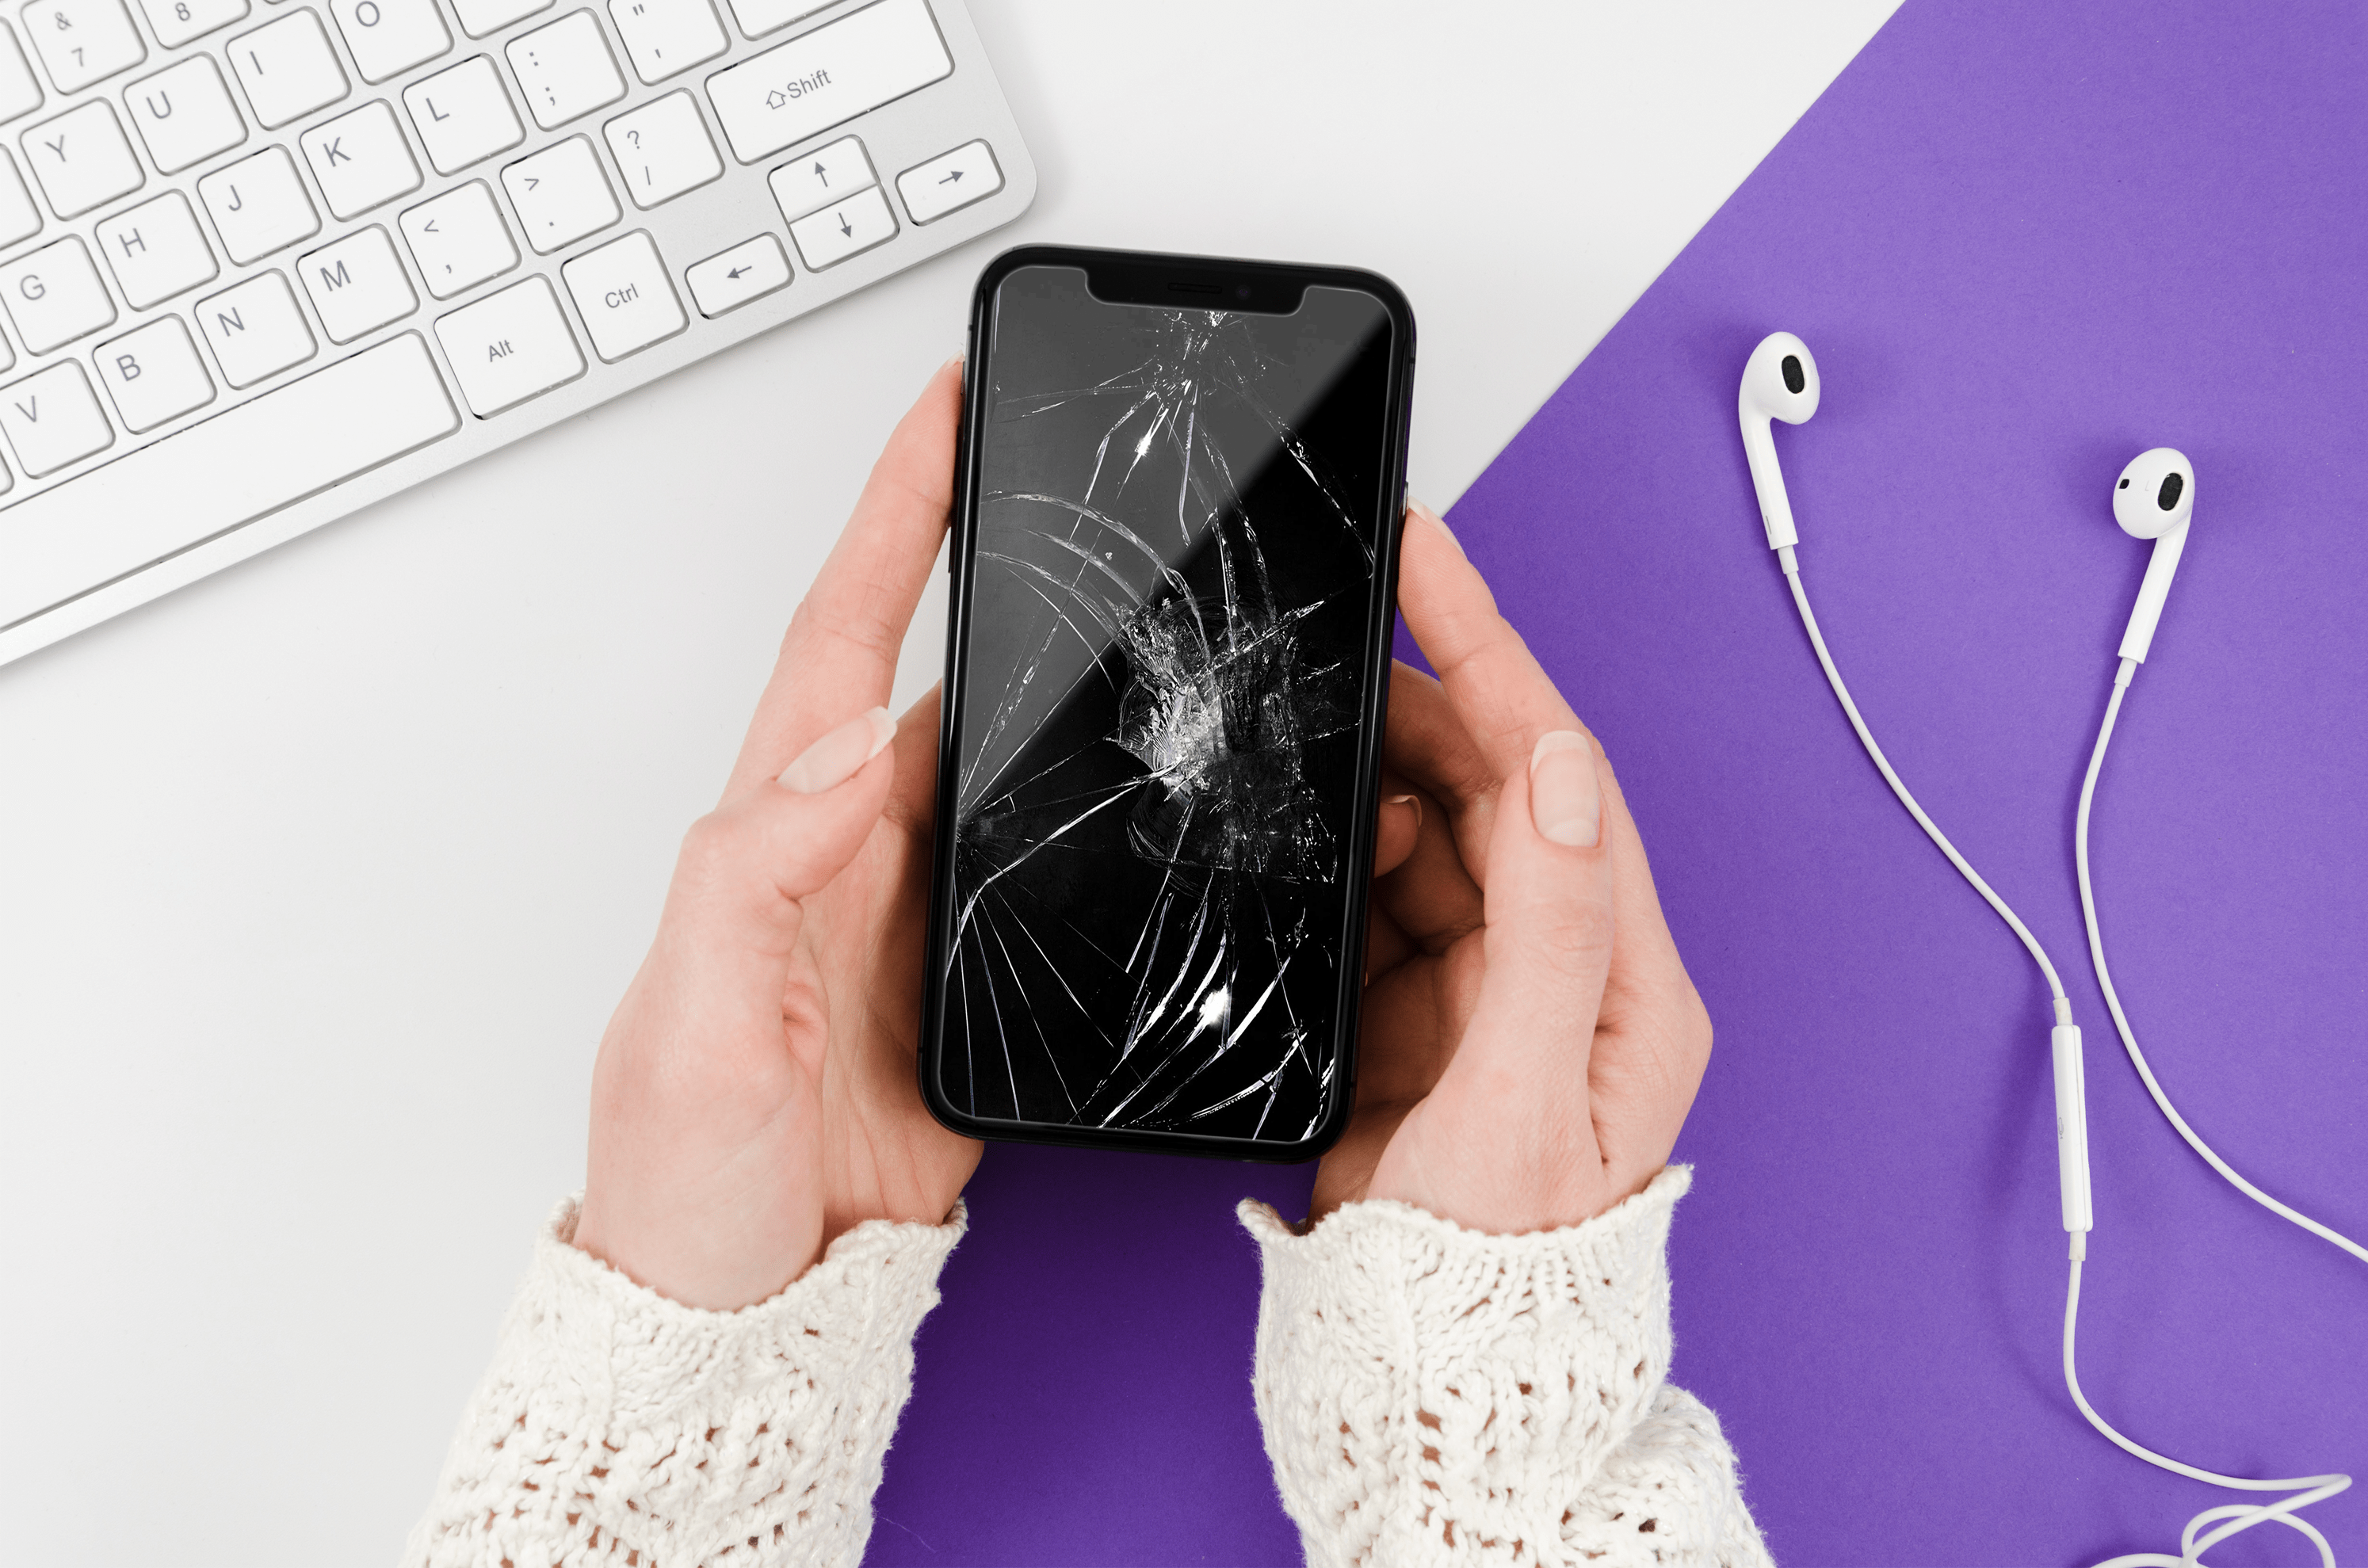 How to Access an Android Phone With a Broken Screen